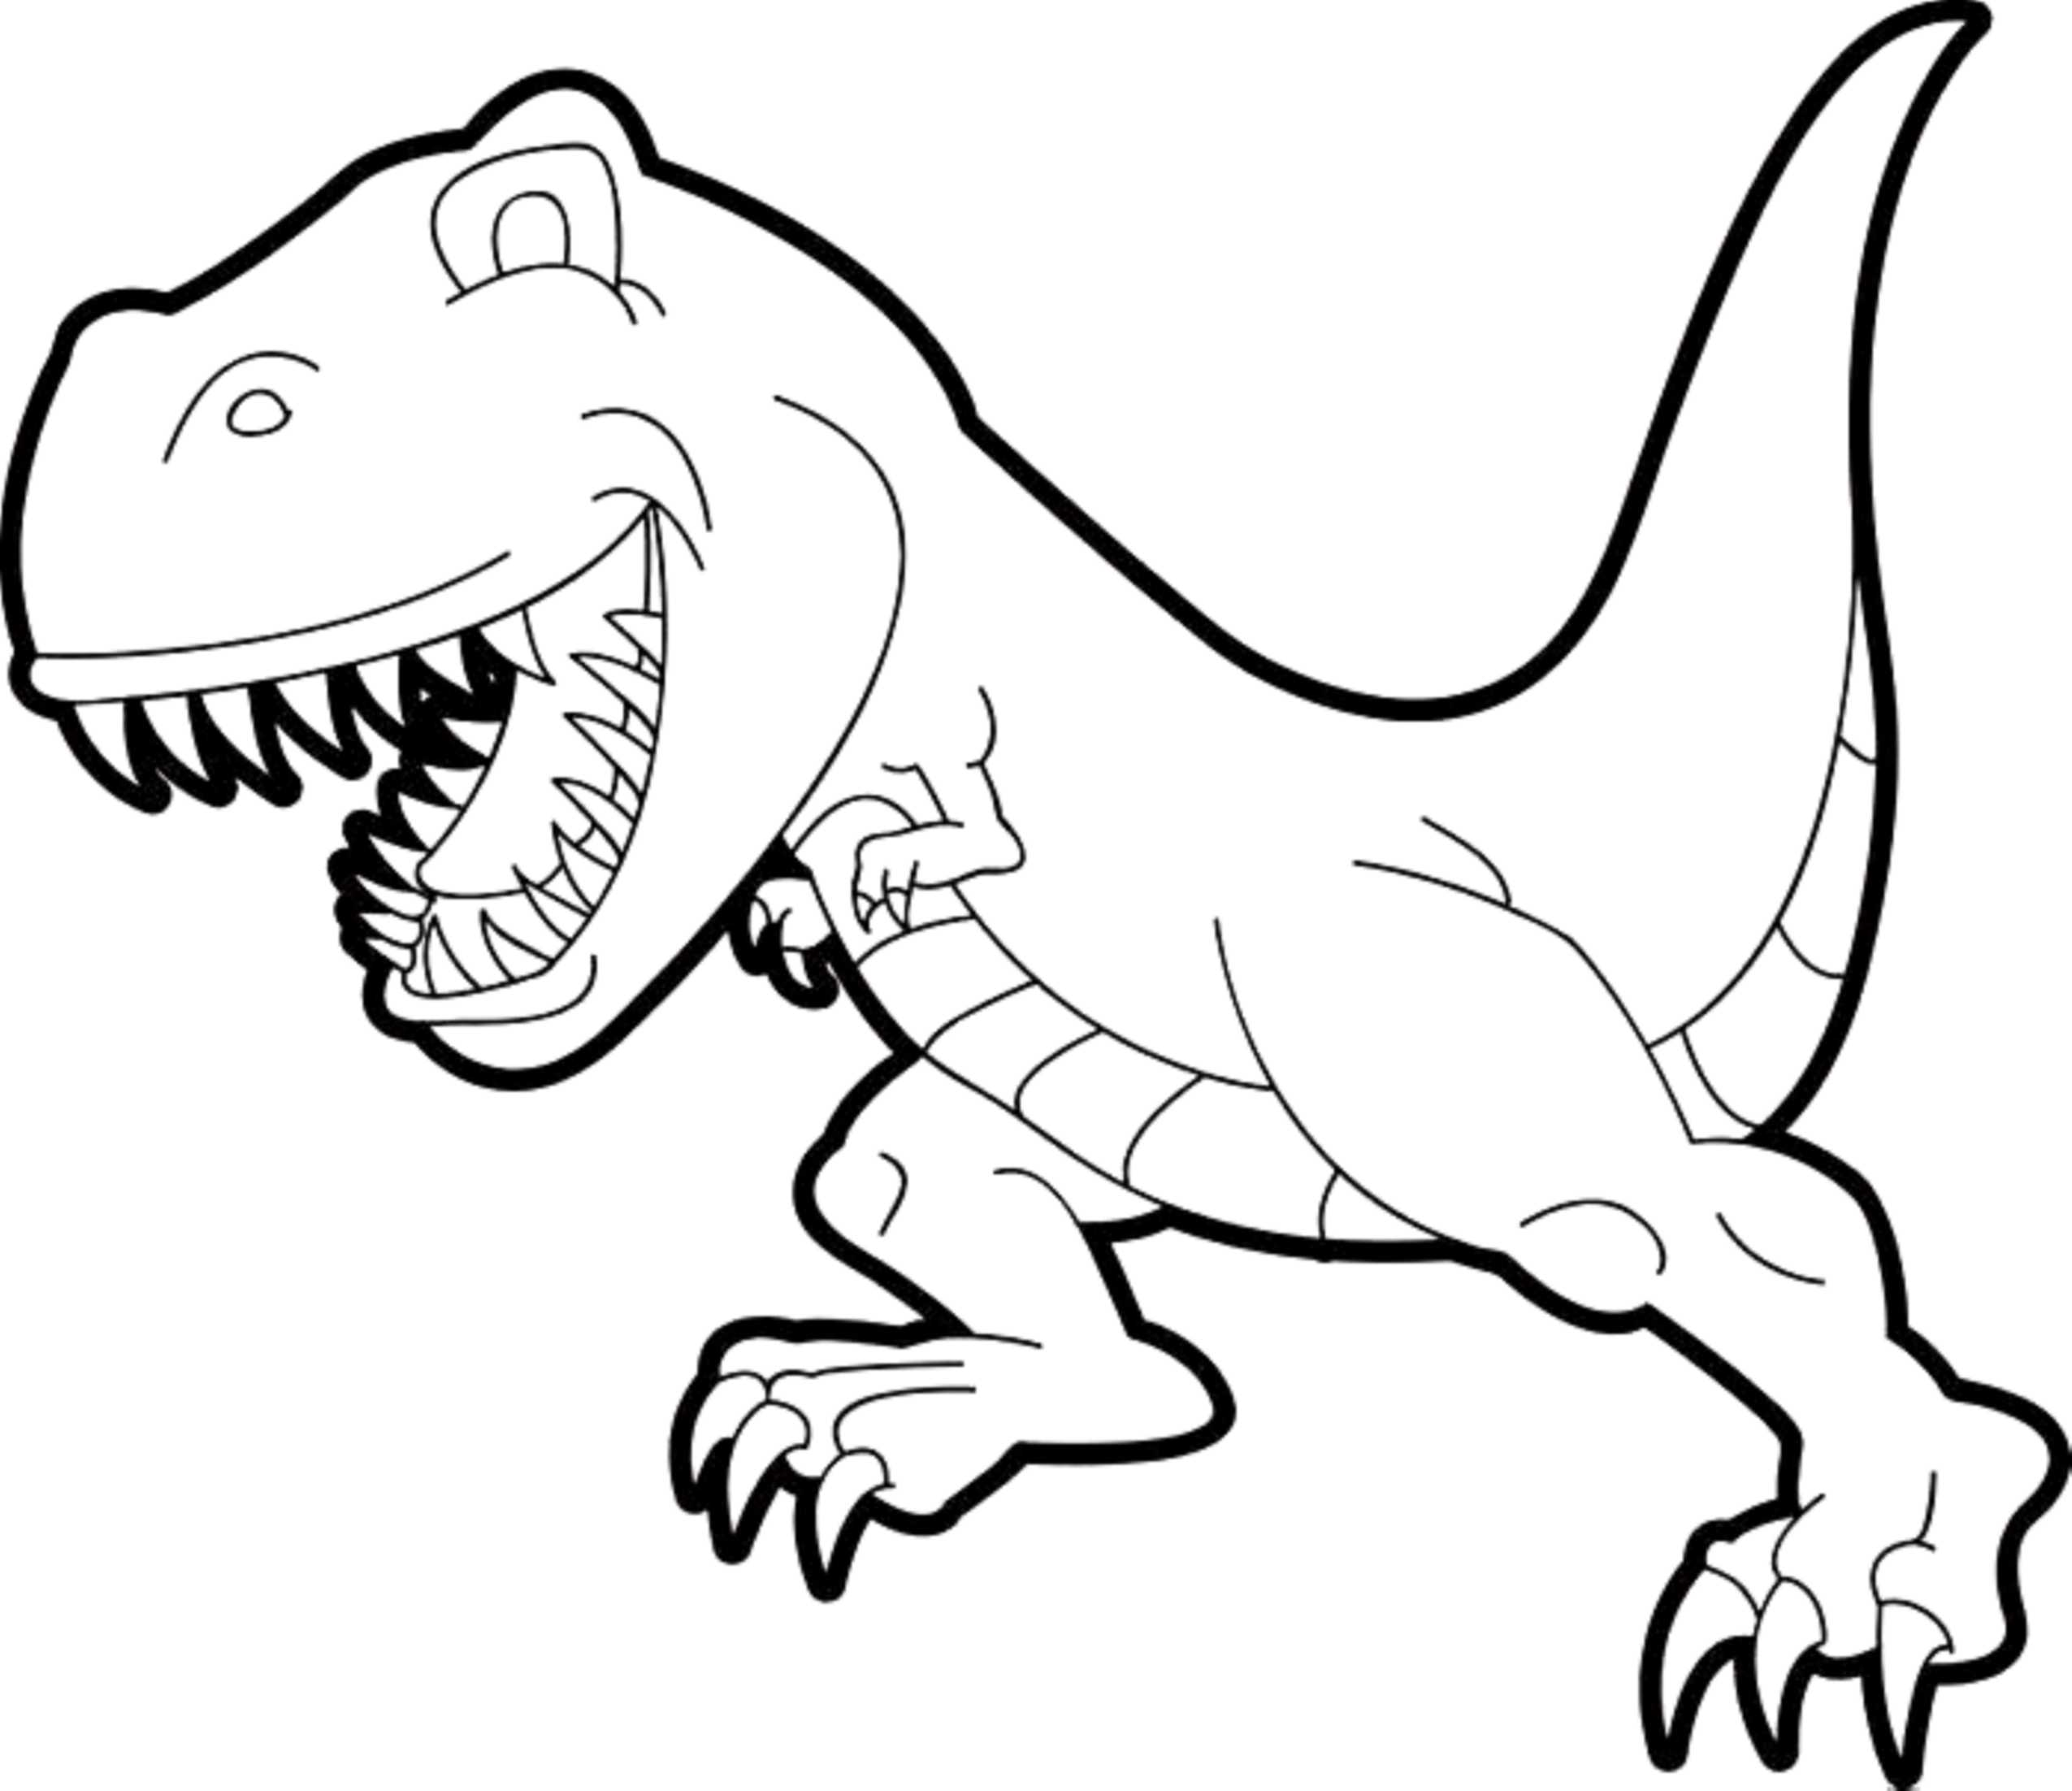 dino coloring pages dinosaurs coloring pages collection free coloring sheets pages dino coloring